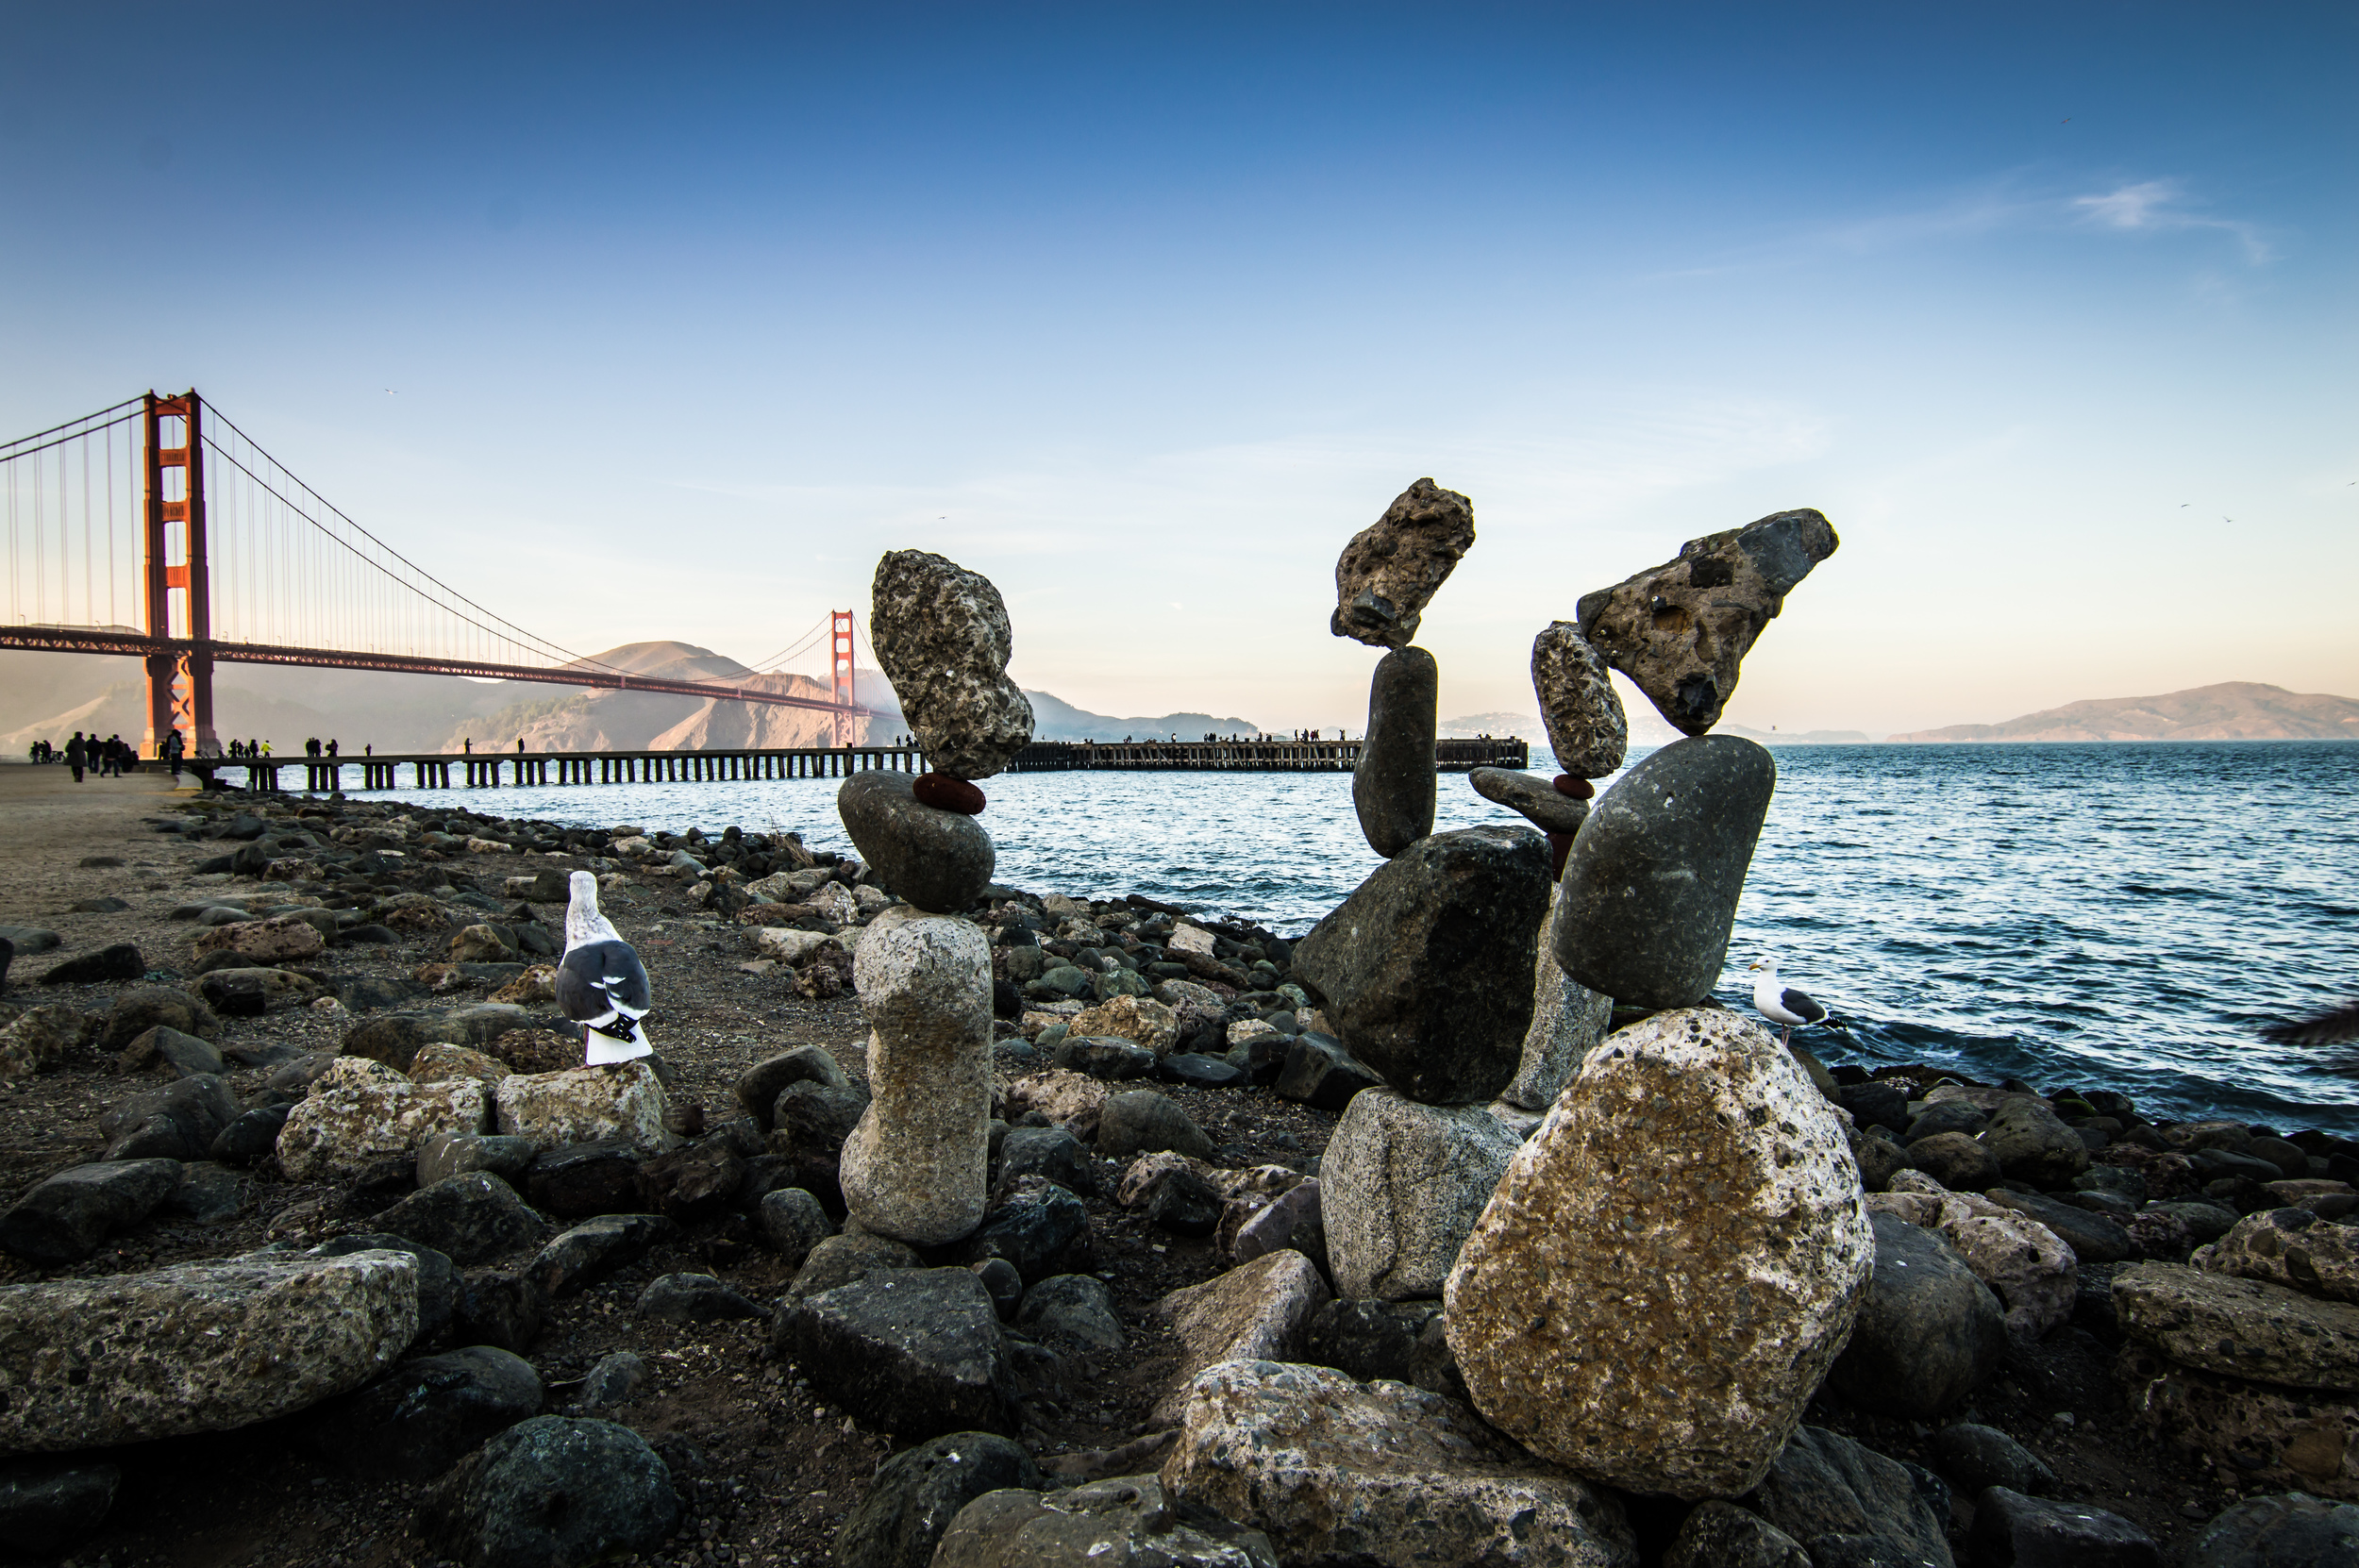 Stacked rocks in front of Golden Gate Bridge